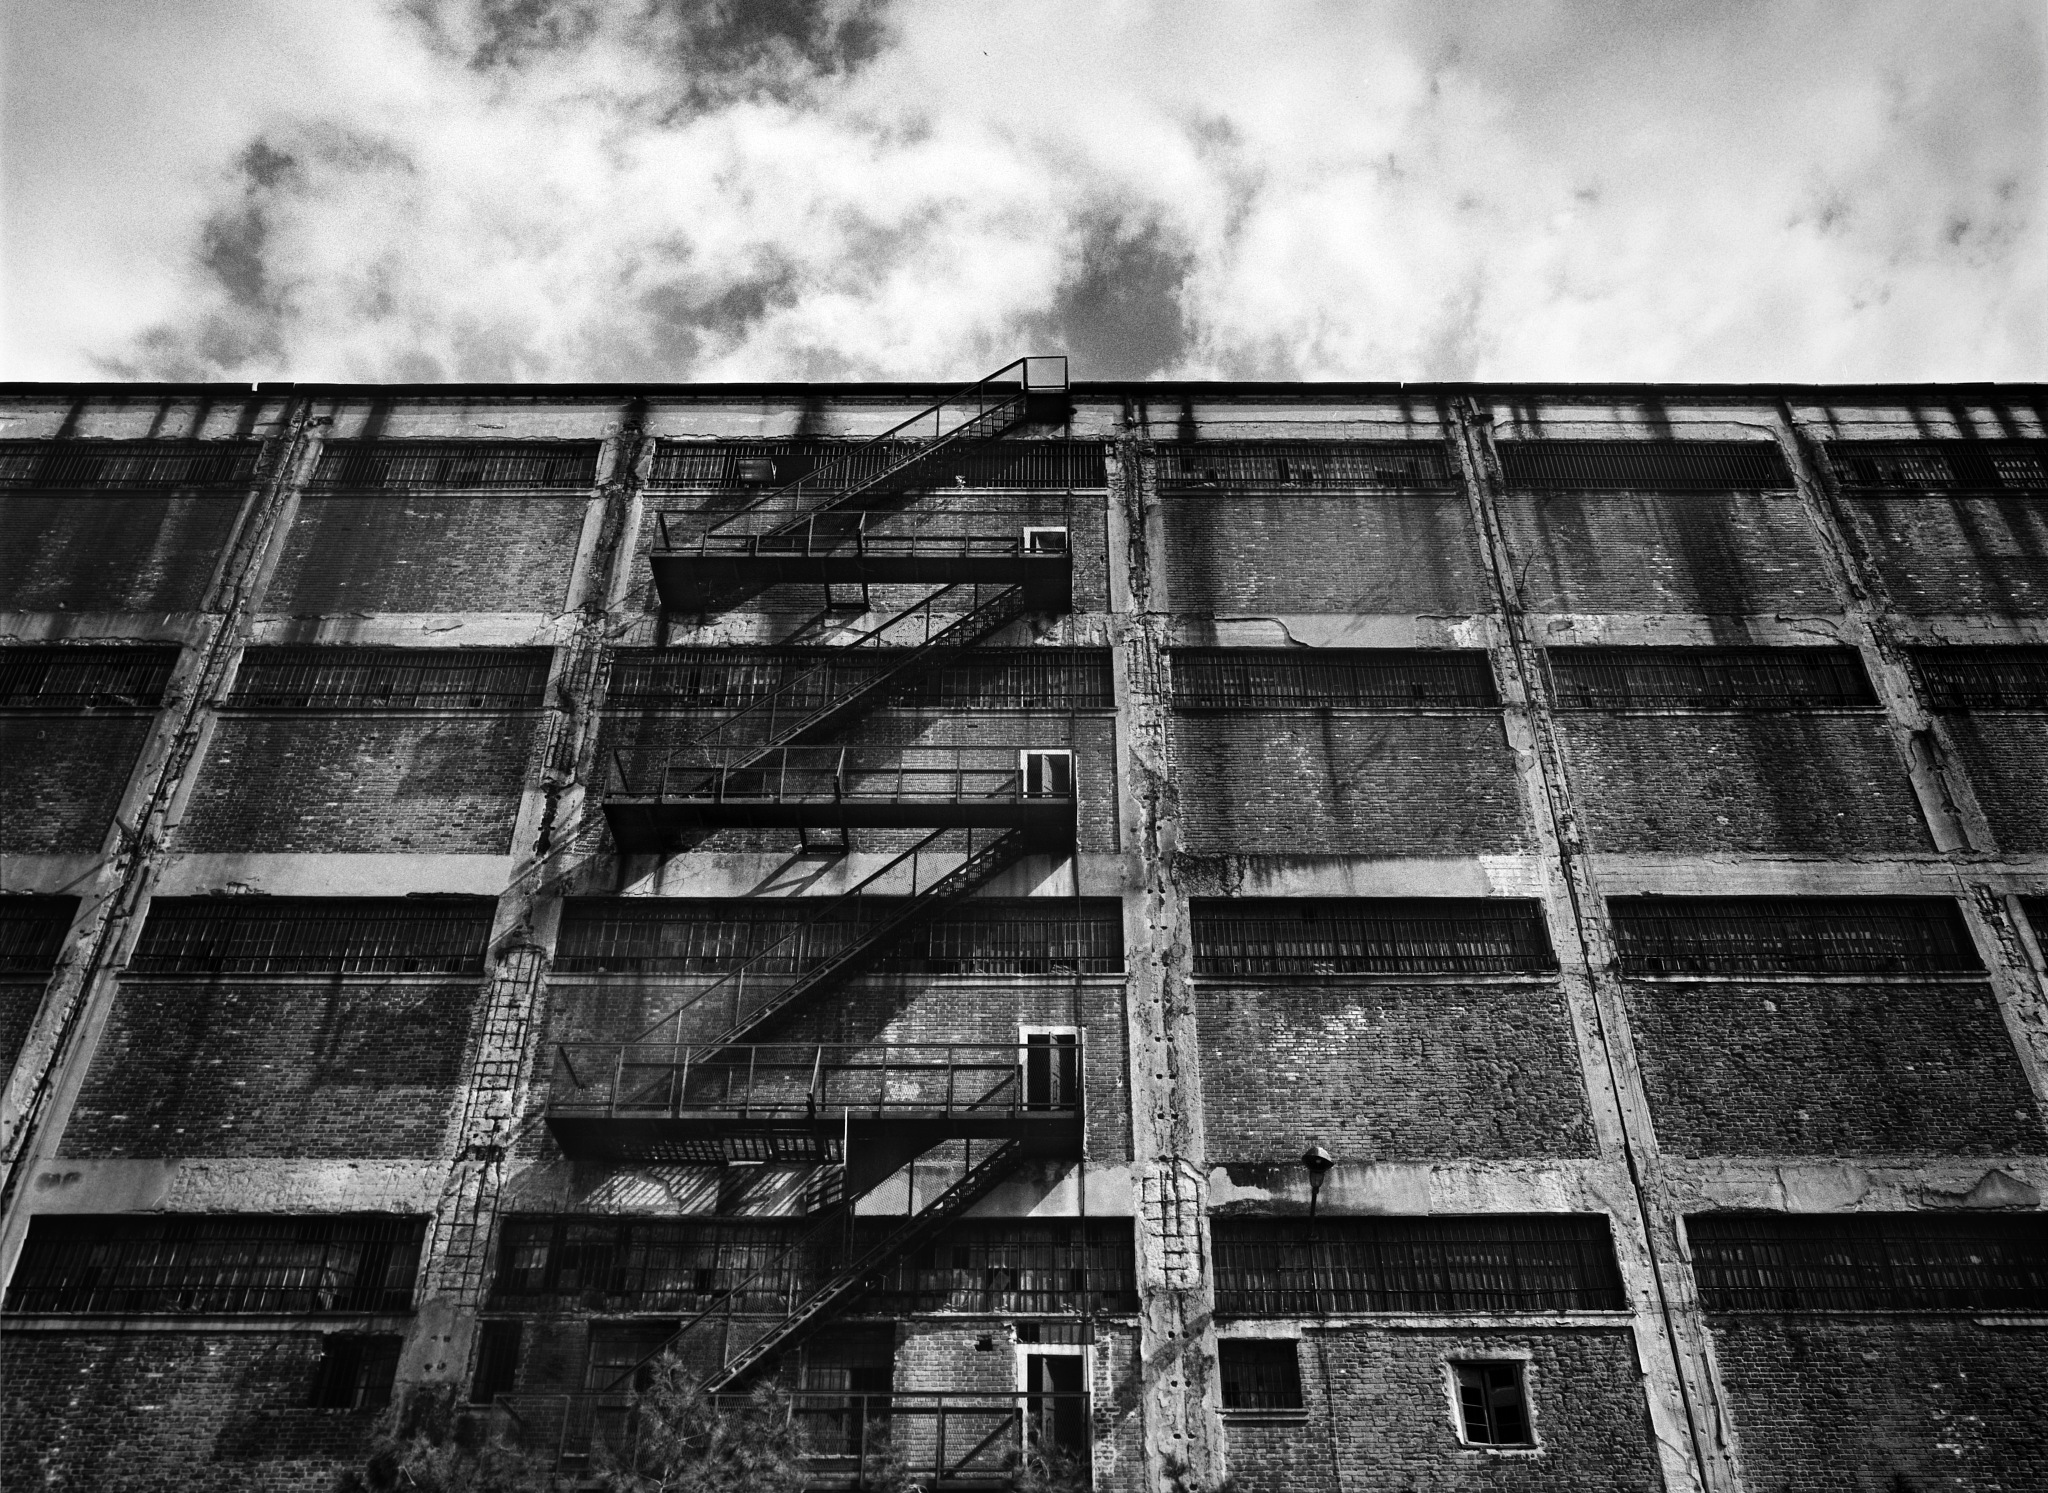 weathered by Stathis Floros